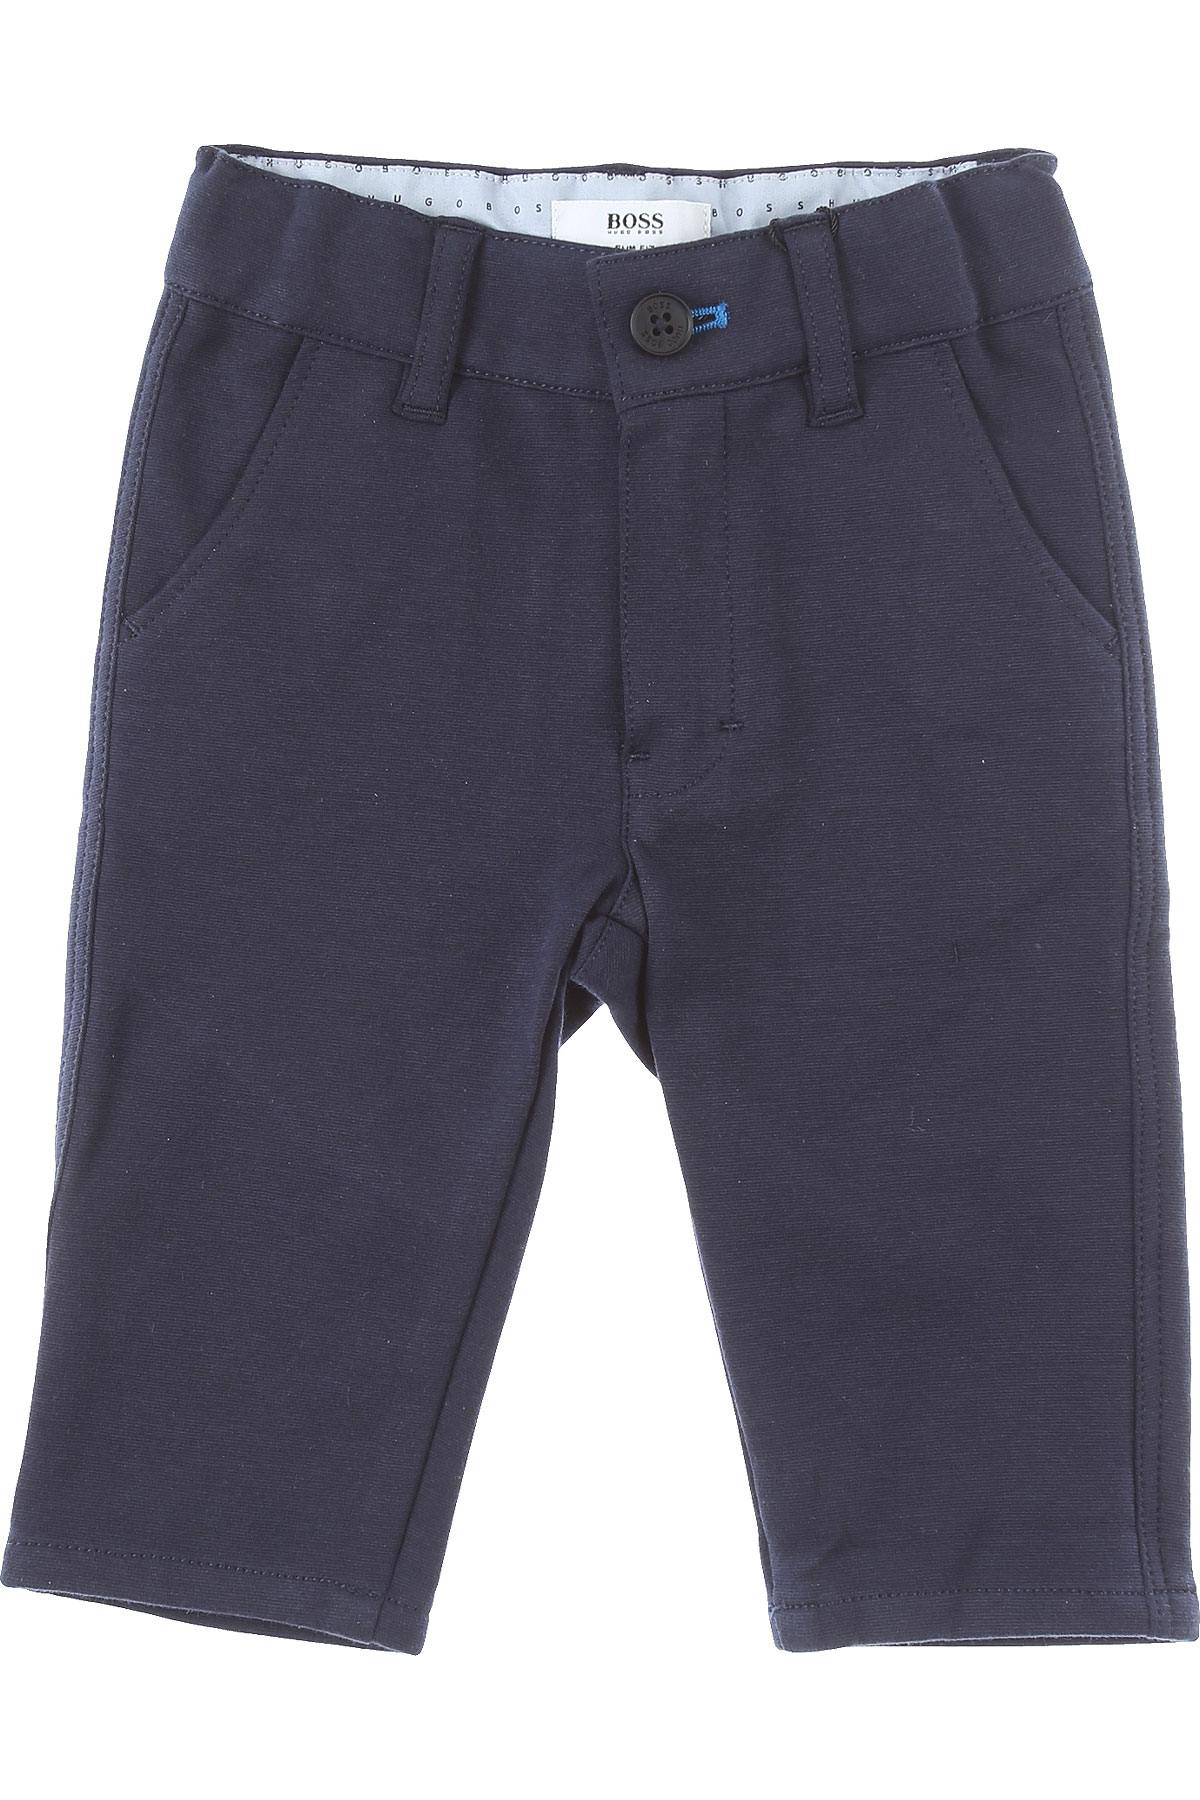 Hugo Boss Baby Pants for Boys On Sale, Navy Blue, Cotton, 2019, 12 M 18 M 2Y 3Y 3Y 6M 9 M